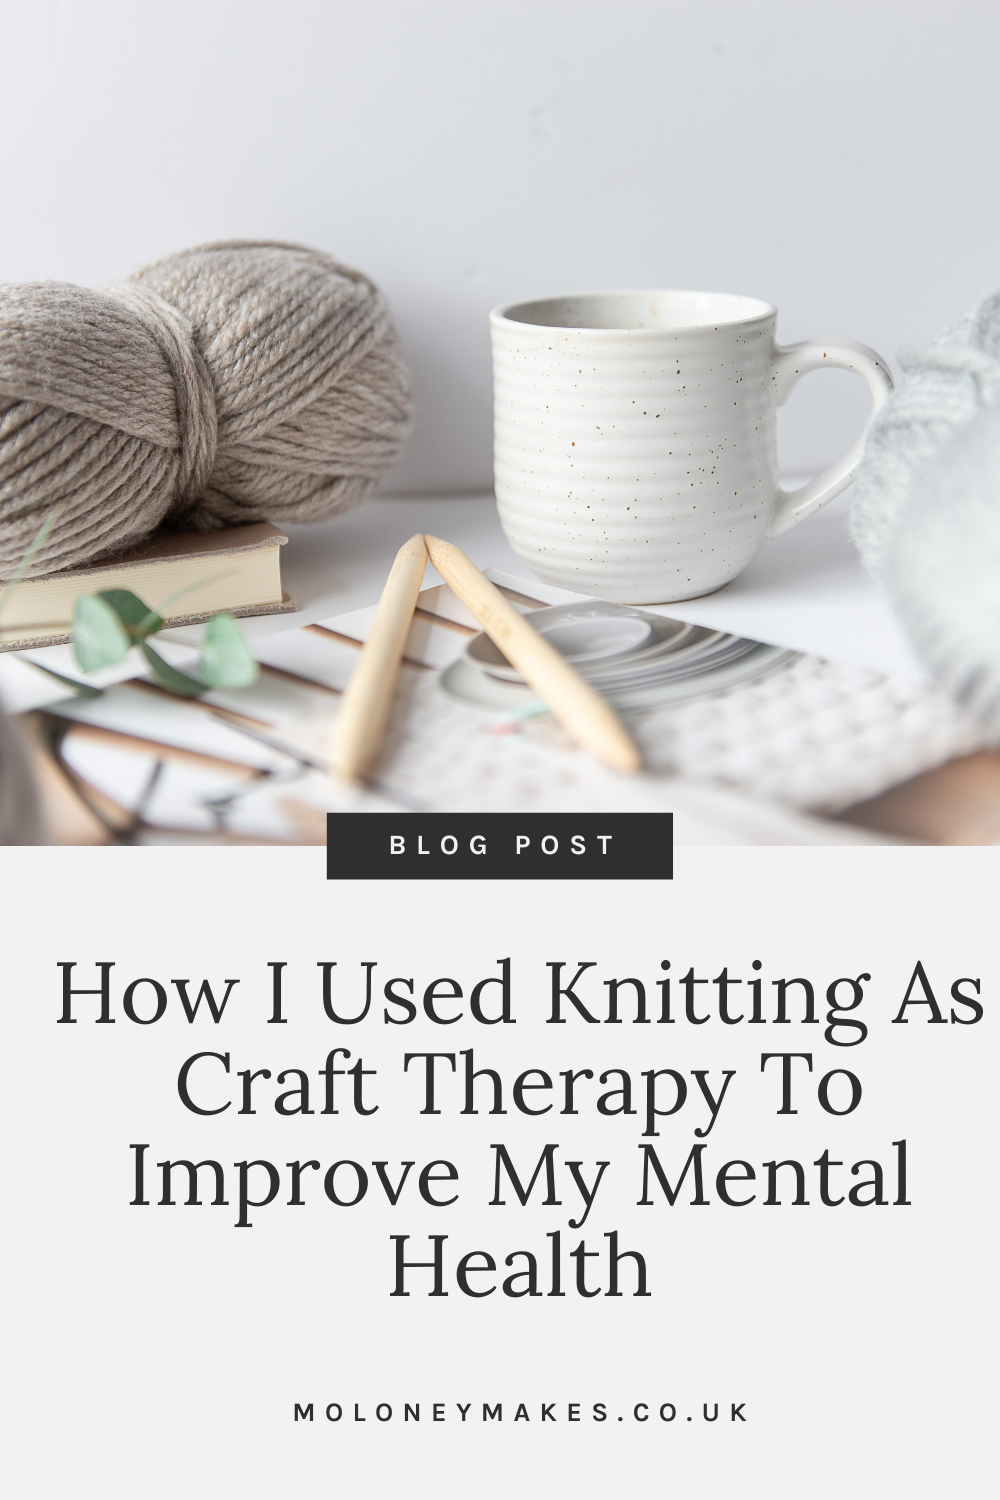 Moloneymakes Blog Pinterest Graphic. Therapeutic benefits of knitting